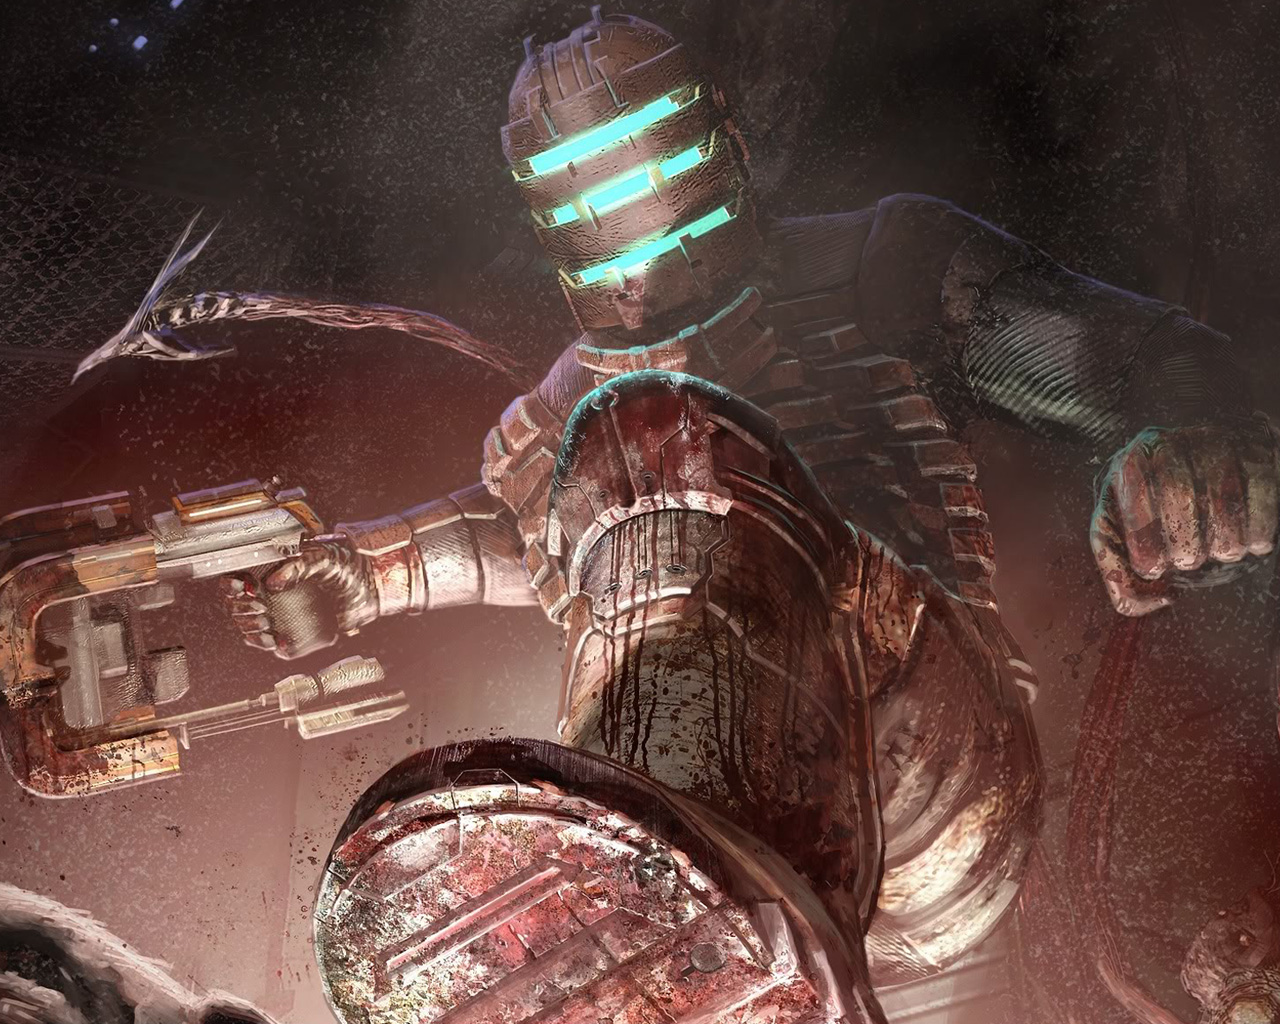 Dead Space Wallpaper in 1280x1024